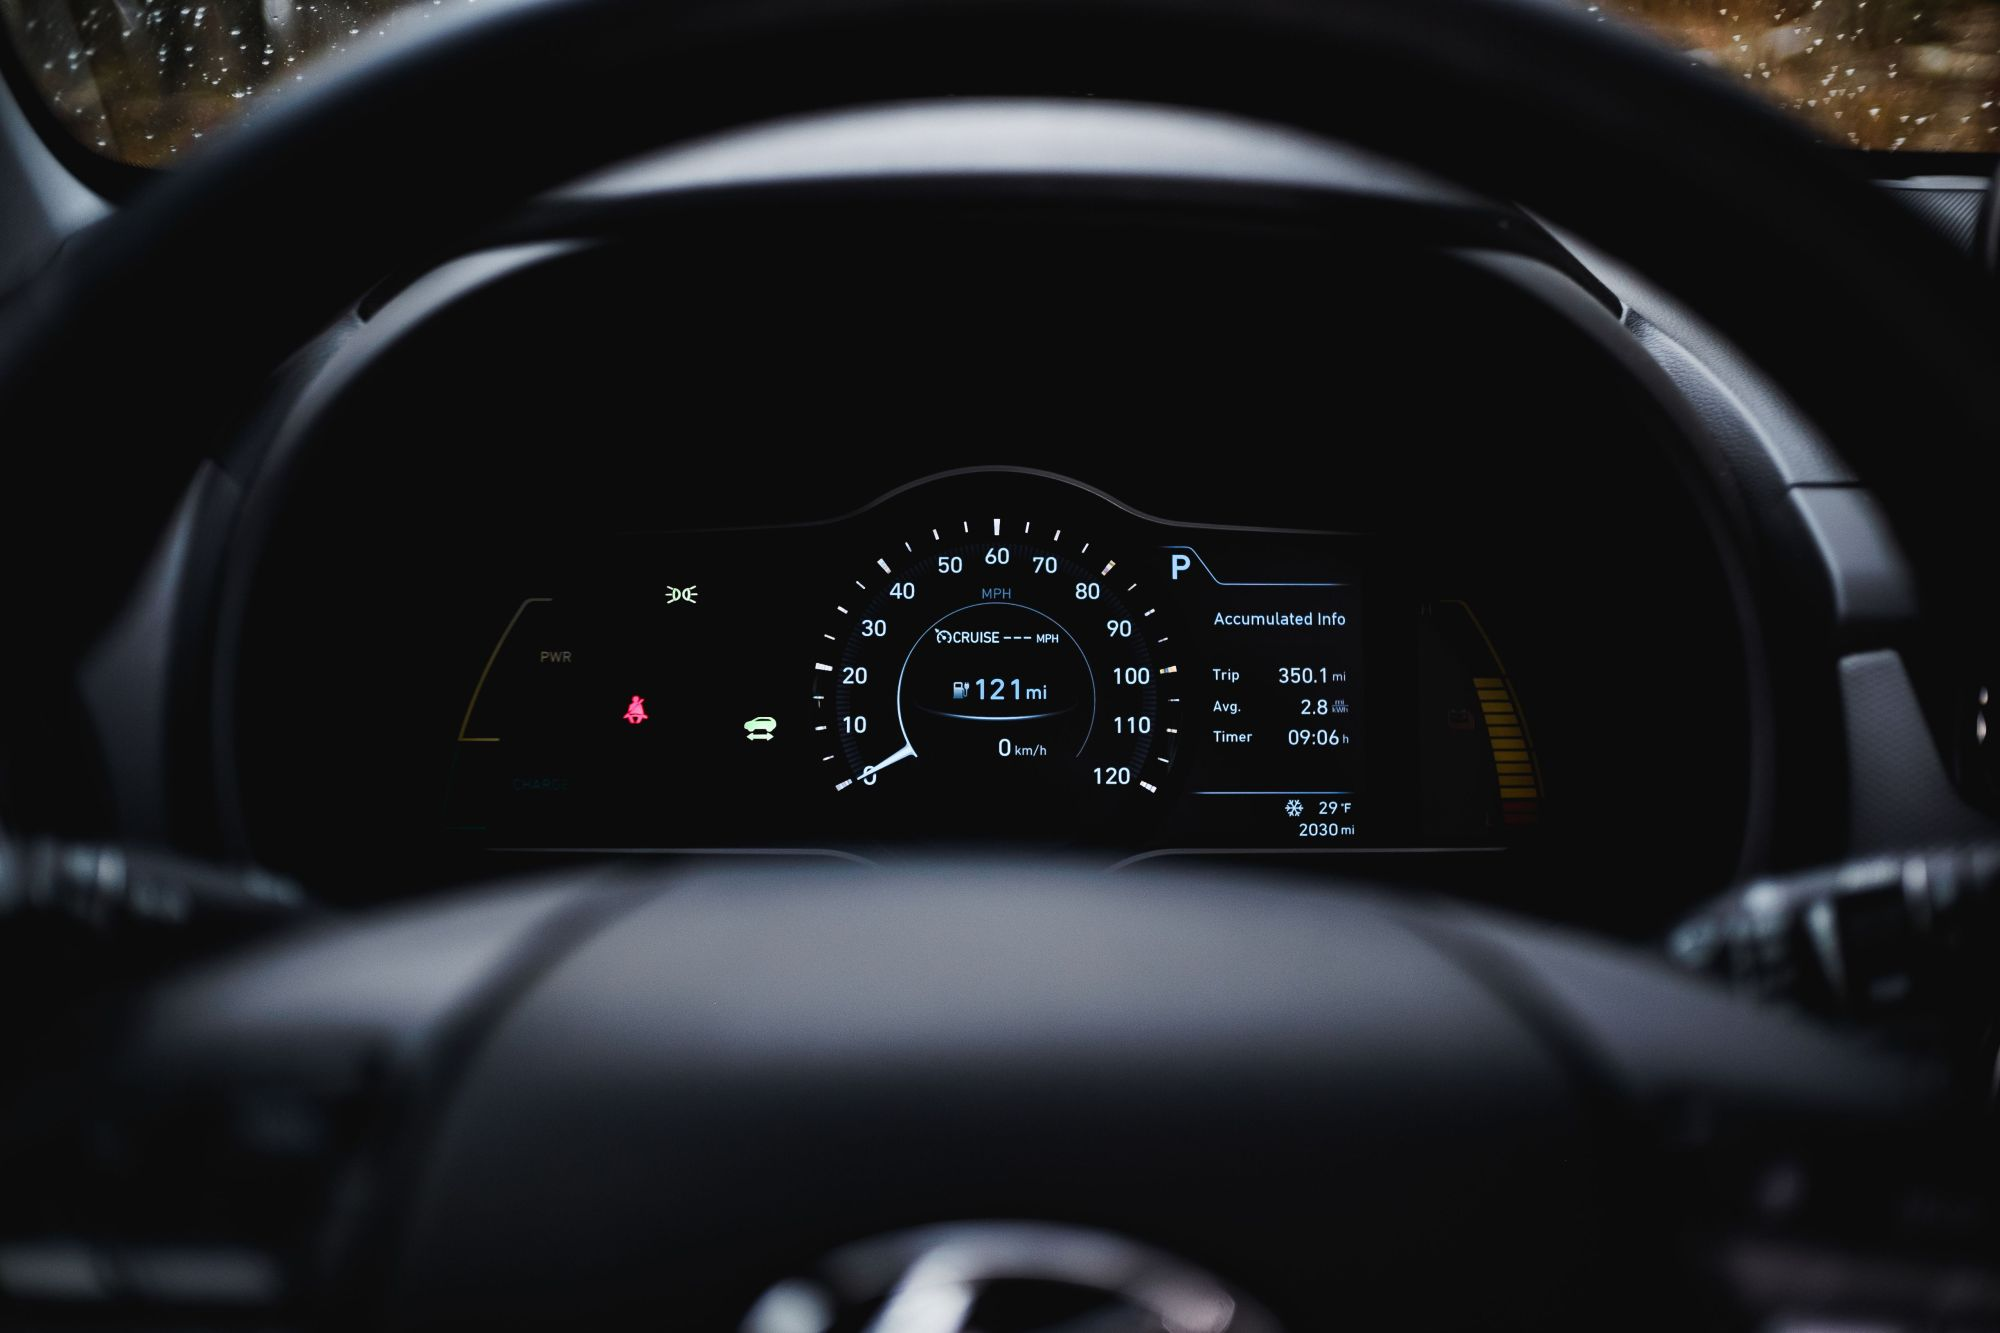 hight resolution of 2013 genesis coupe gauges wiring diagram wiring diagram2013 genesis coupe gauges wiring diagram